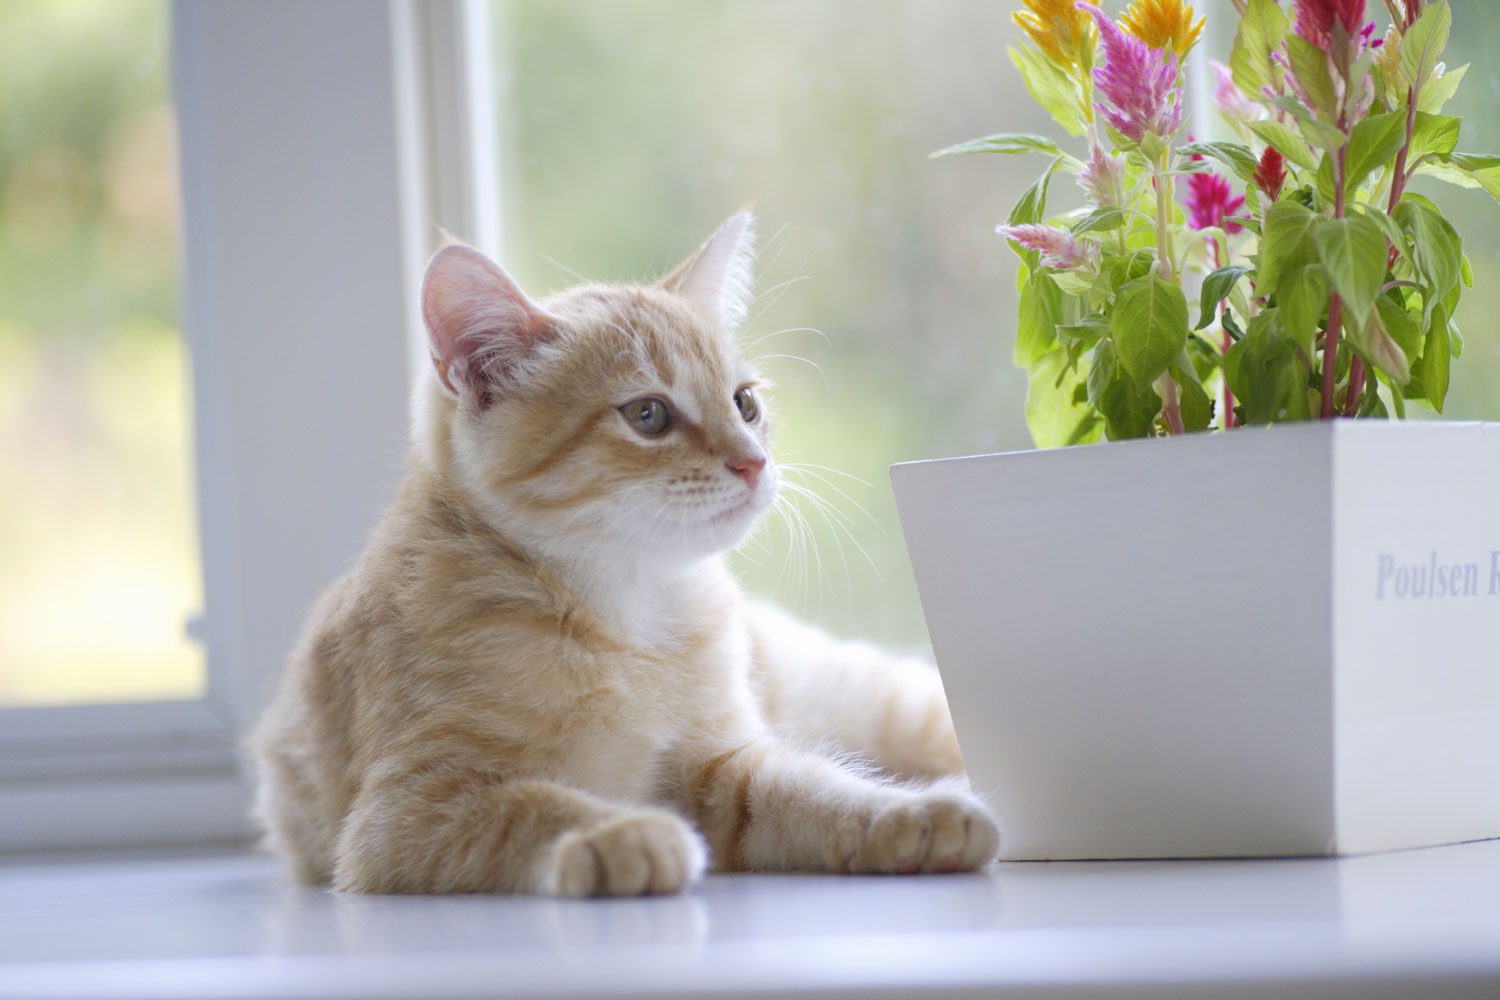 A cute white kitten sitting near the window with a celosia flower plant in the vase